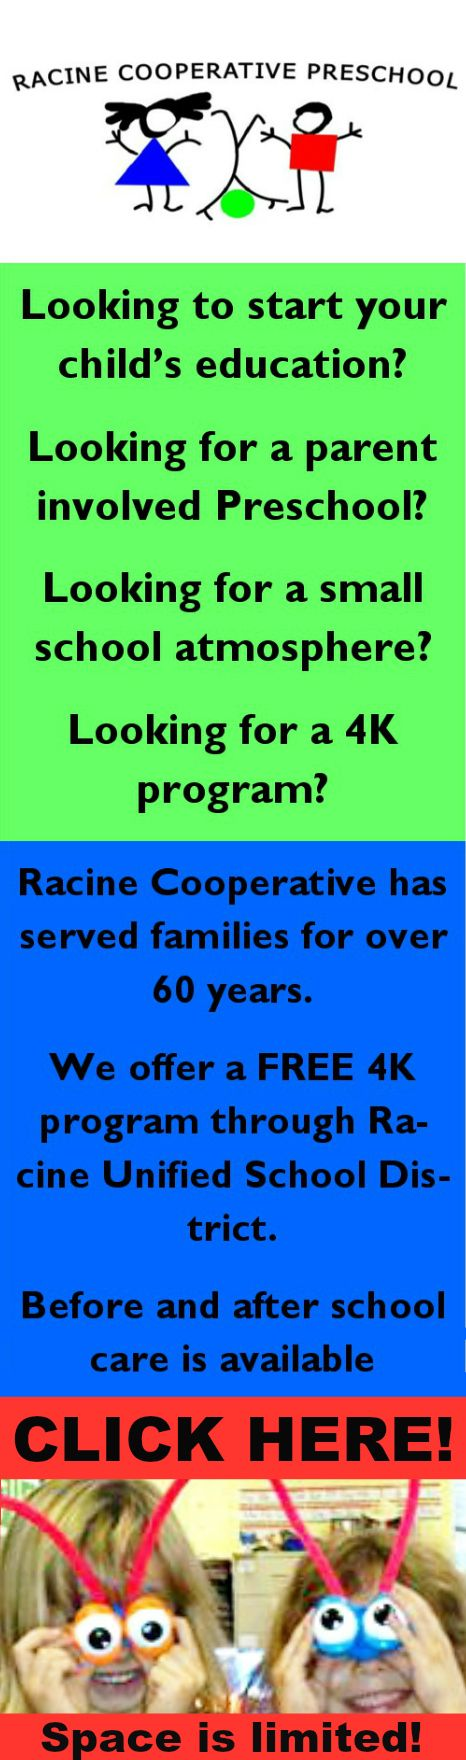 Are you l@@king? Click here for more info about Racine Cooperative Preschool!   #preschool #4K